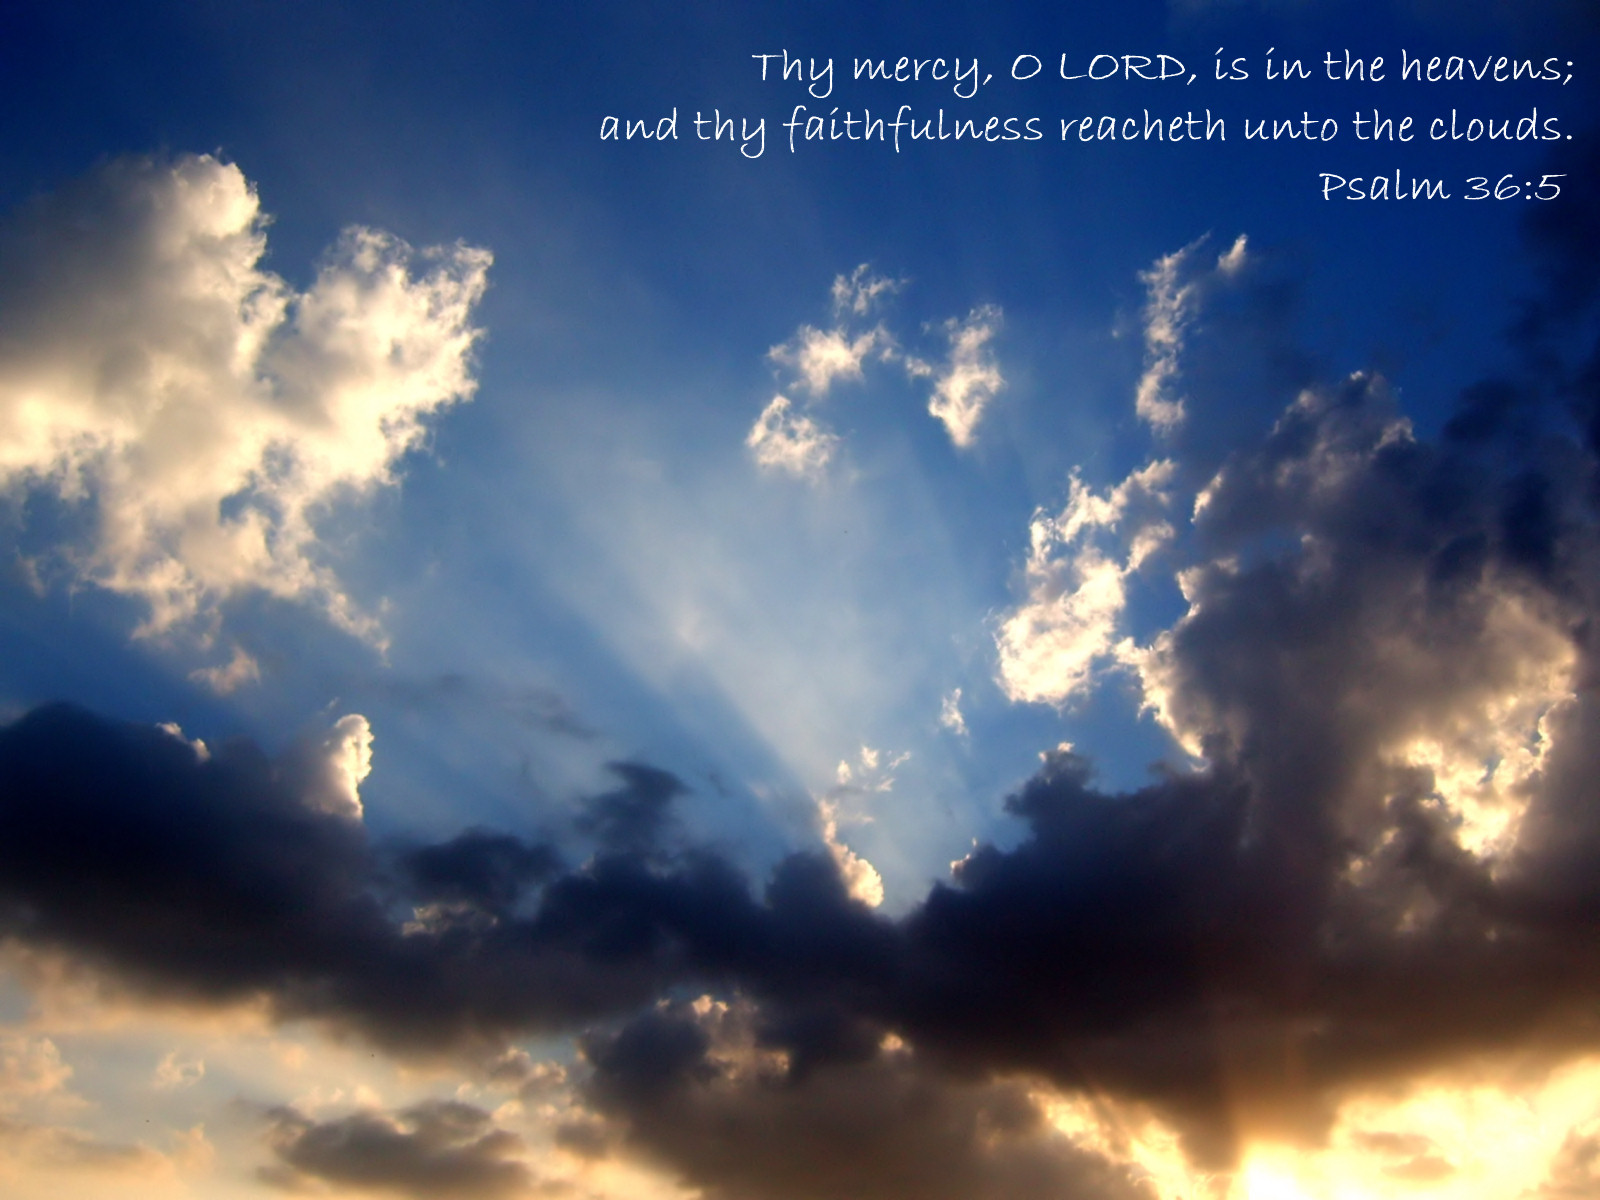 Free Christian Wallpaper - Download high resolution desktop images